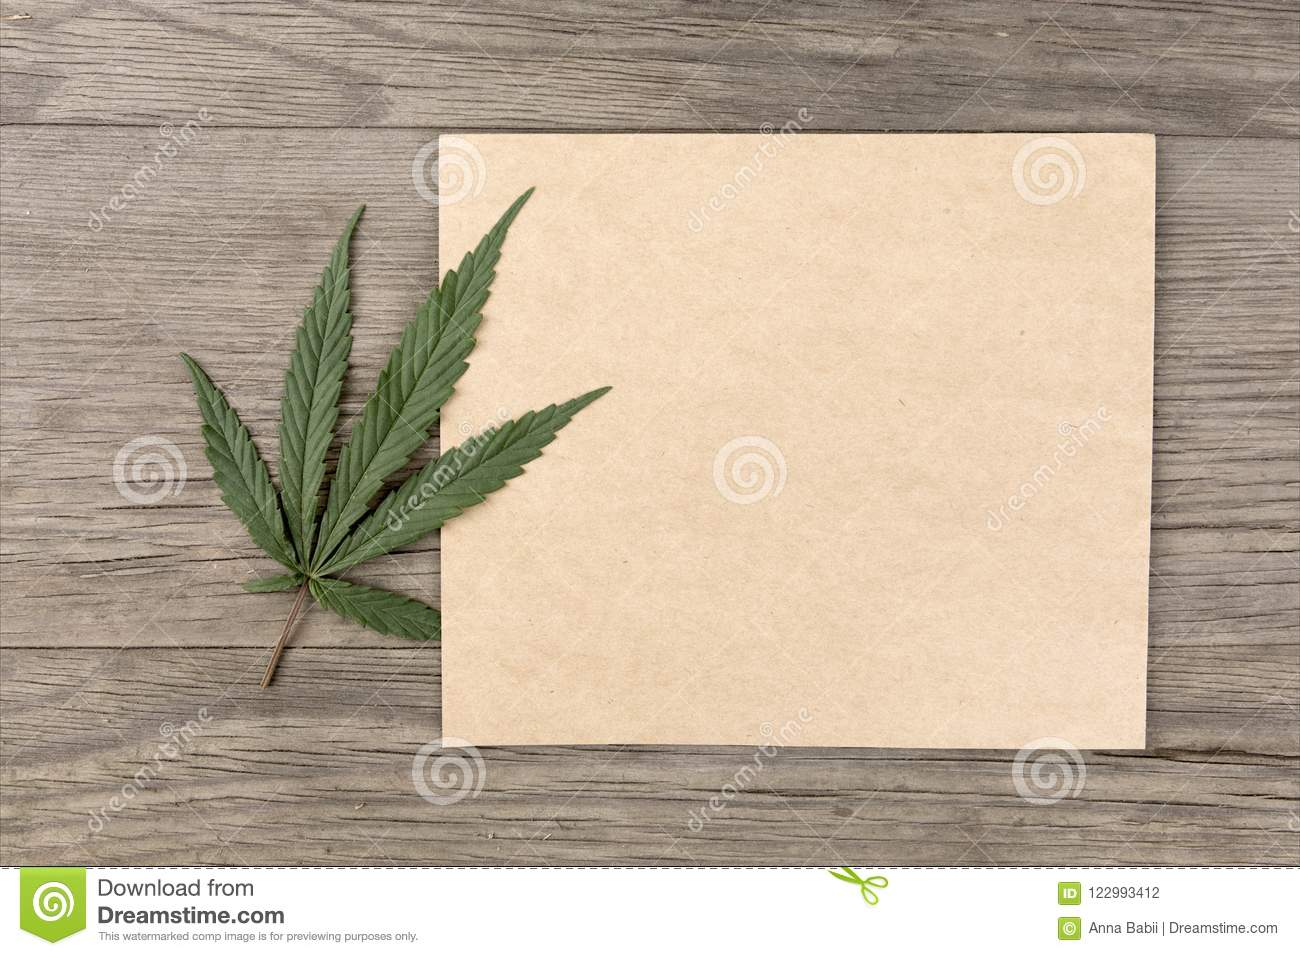 Hemp leaves and flowers with craft blank paper on old grunge wooden background. Top view. Minimalistic mockup.